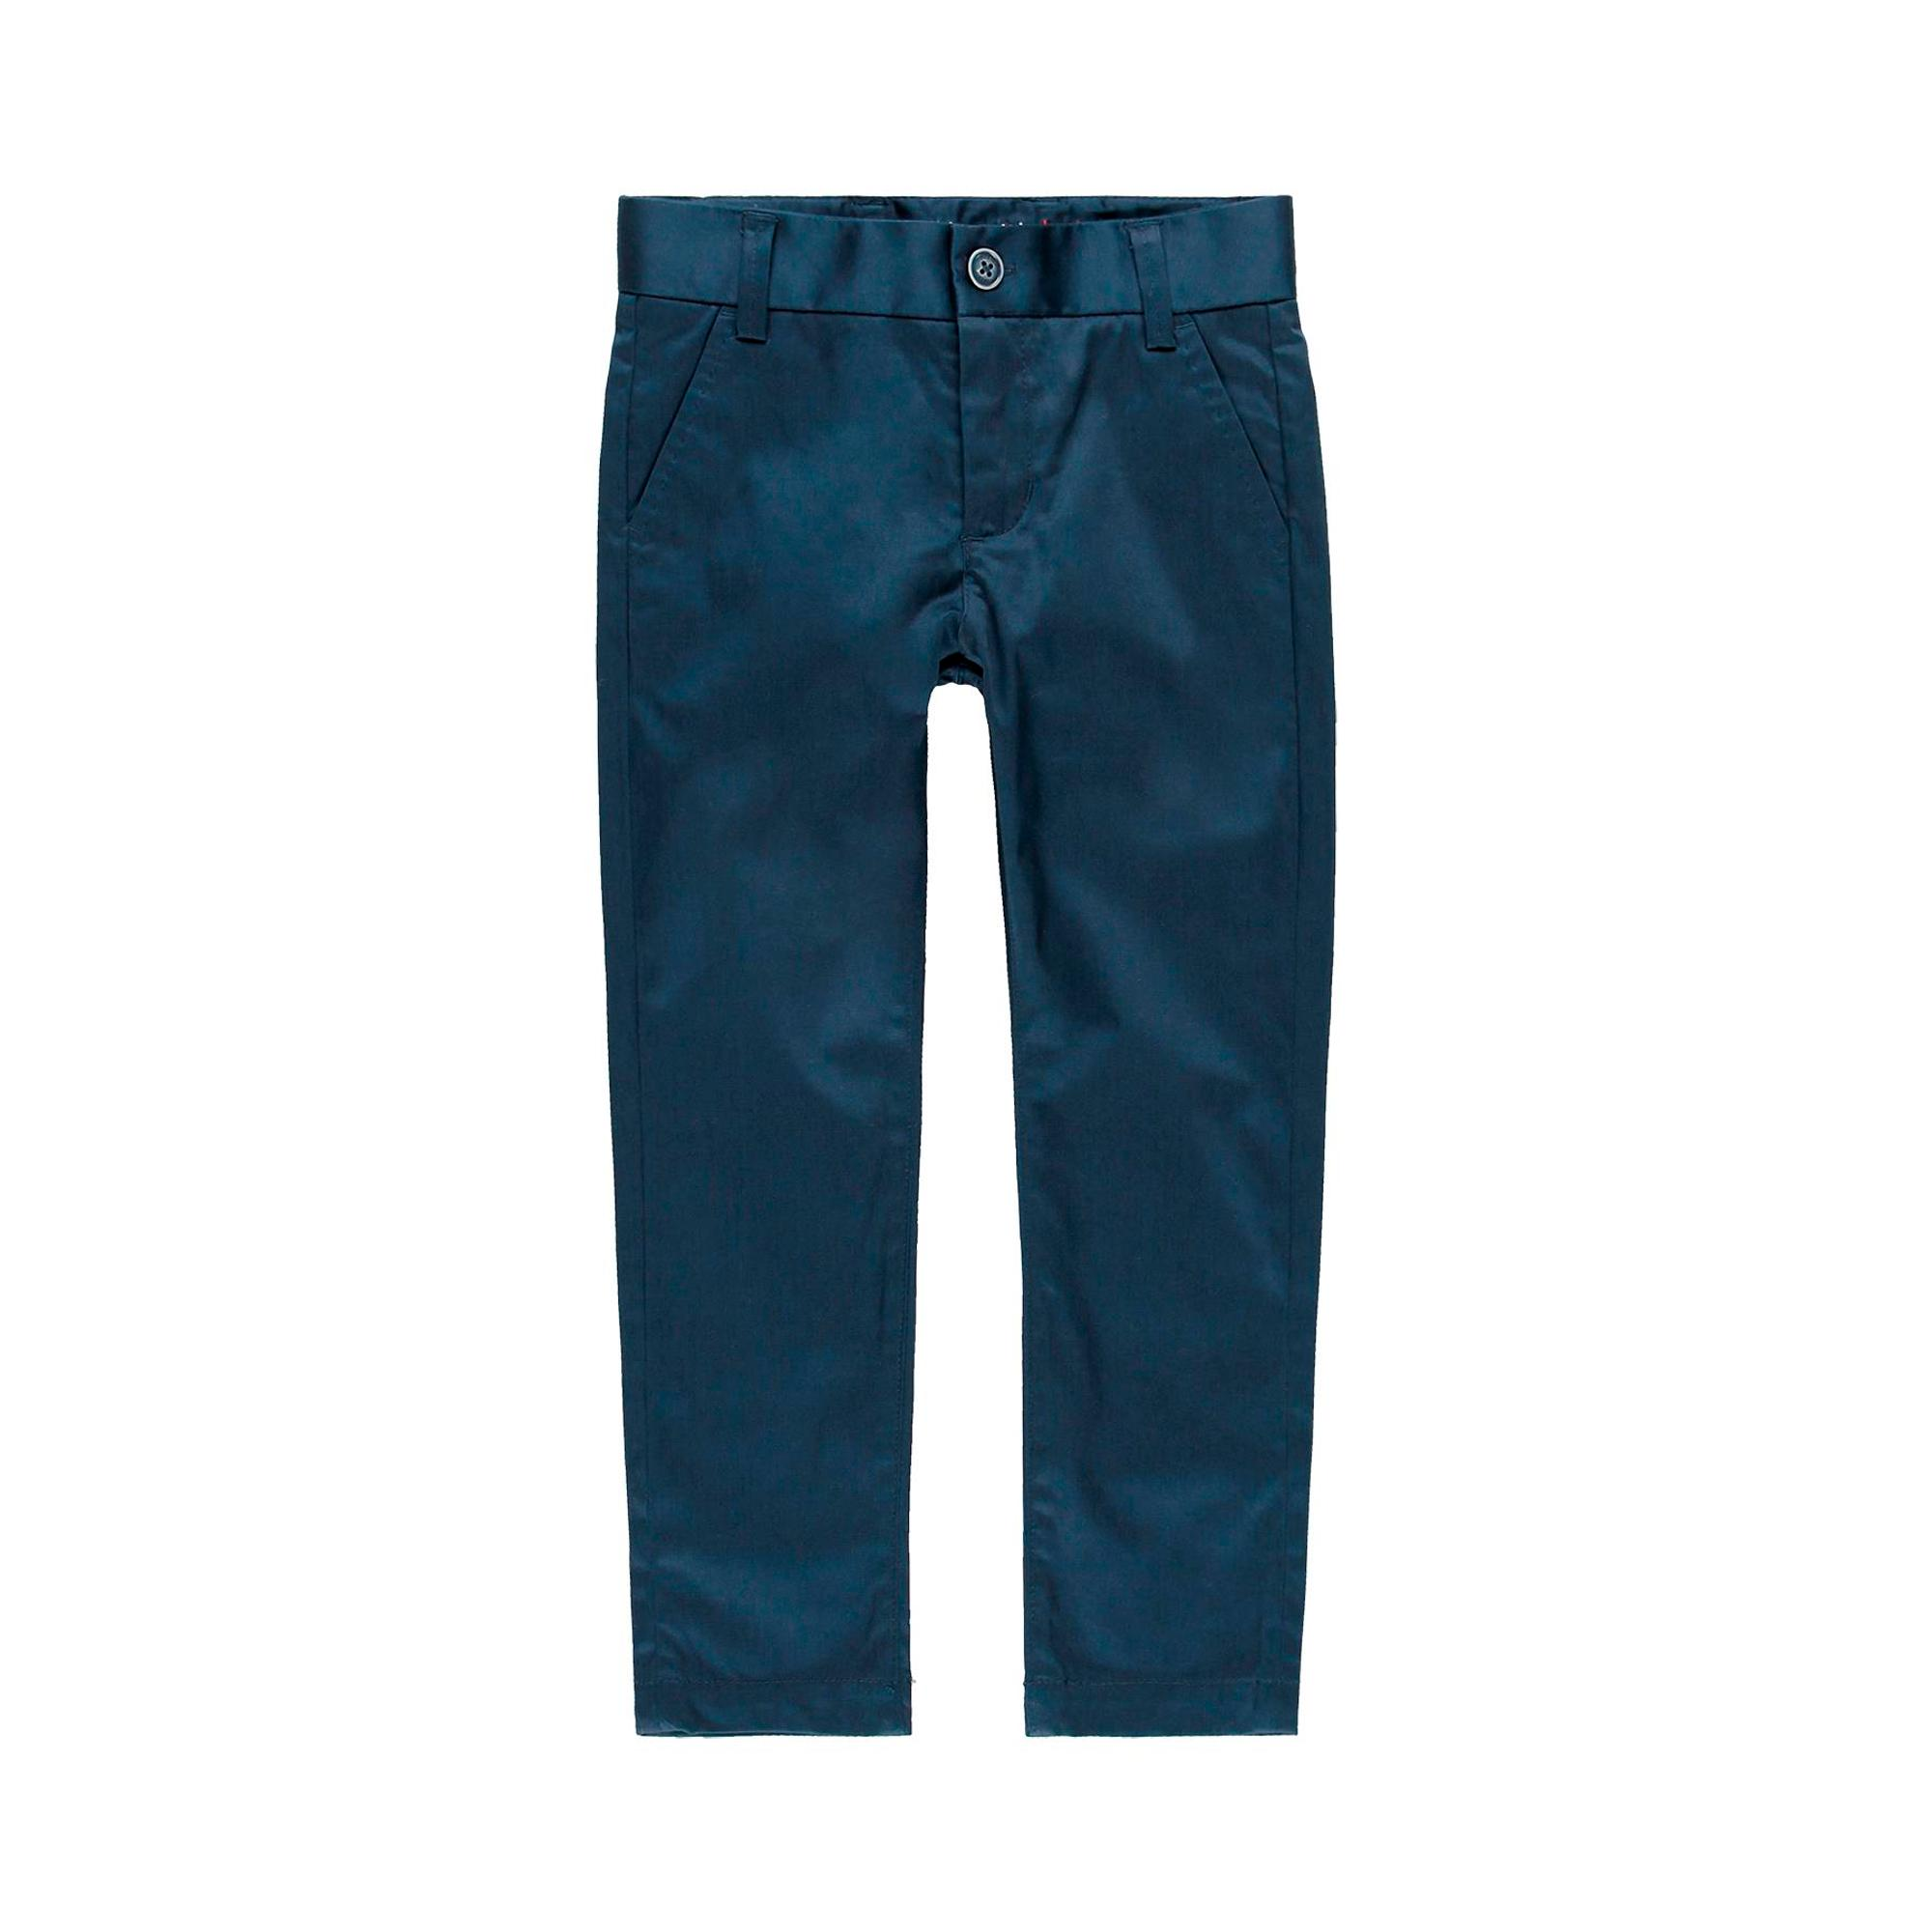 NAVY STRETCH SATIN TROUSERS